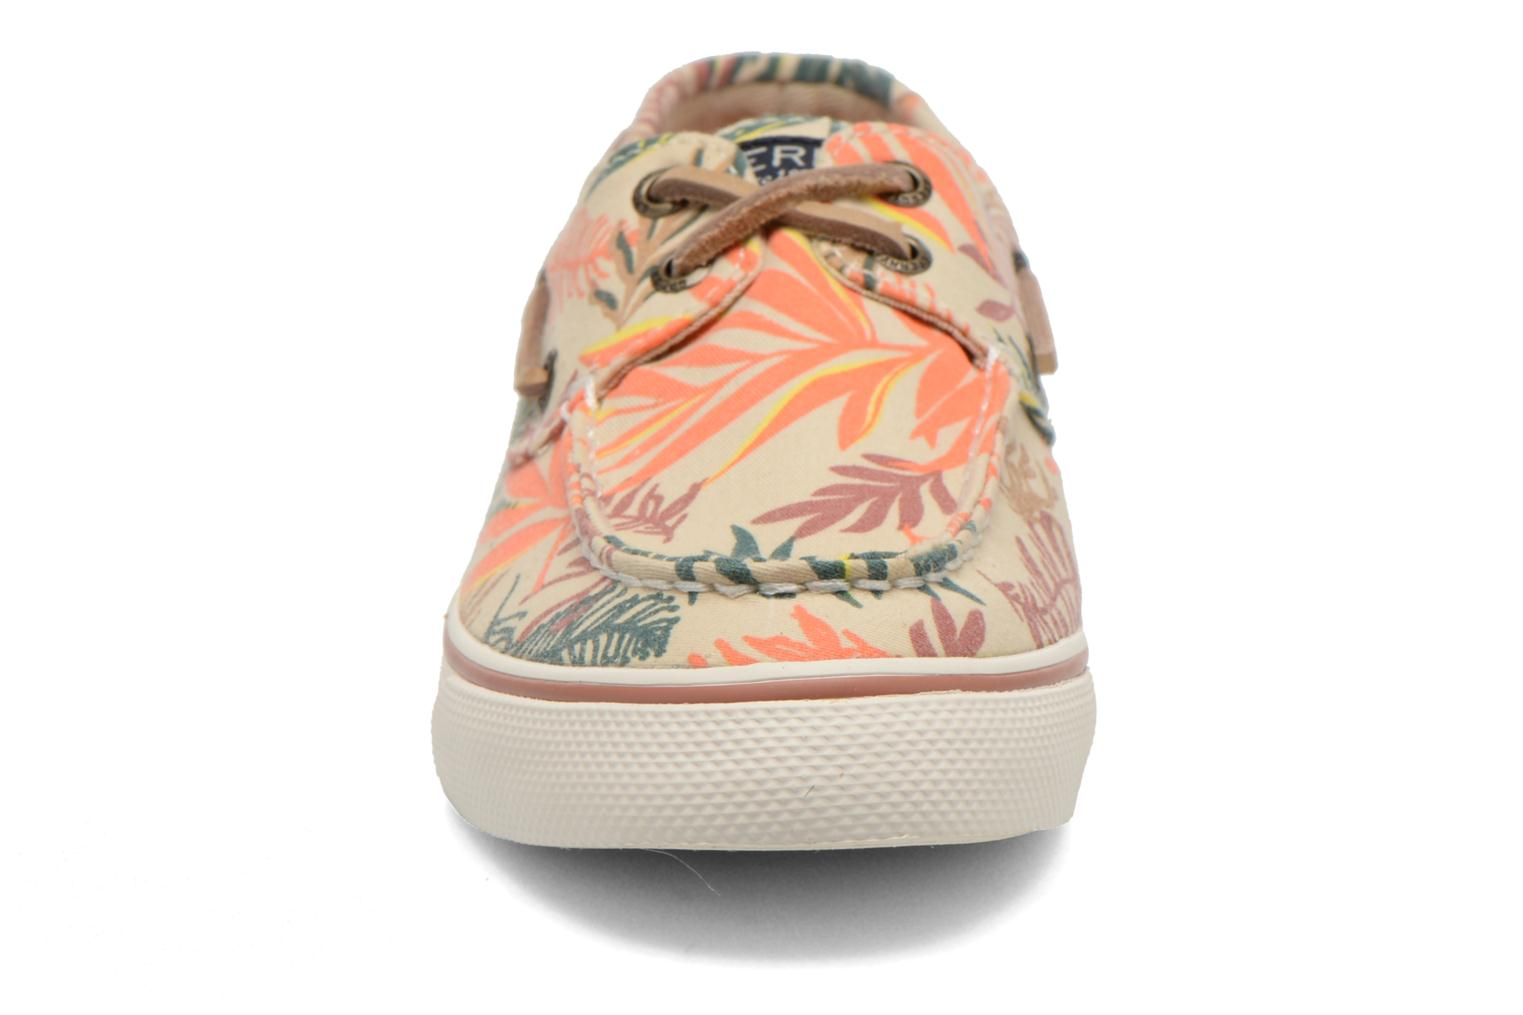 Chaussures à lacets Sperry Bahama Seaweed Print Multicolore vue portées chaussures